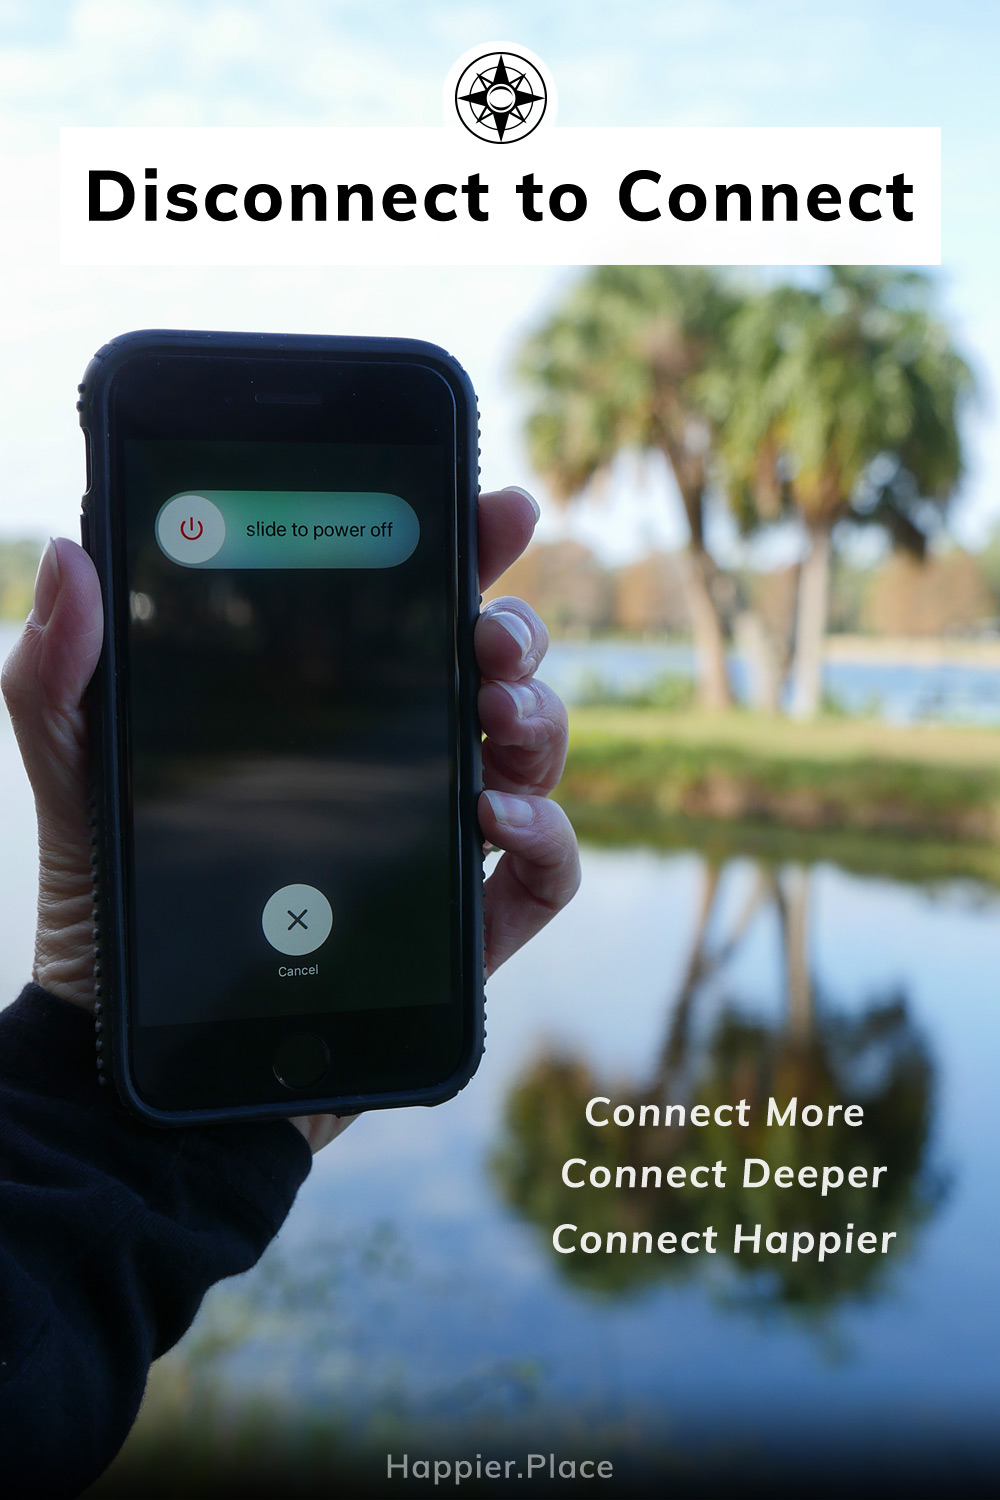 Turn off your smartphone in nature: disconnect to connect more, deeper, happier. ...or leave that thing at home altogether! #HappierPlace #outdoors #happiness